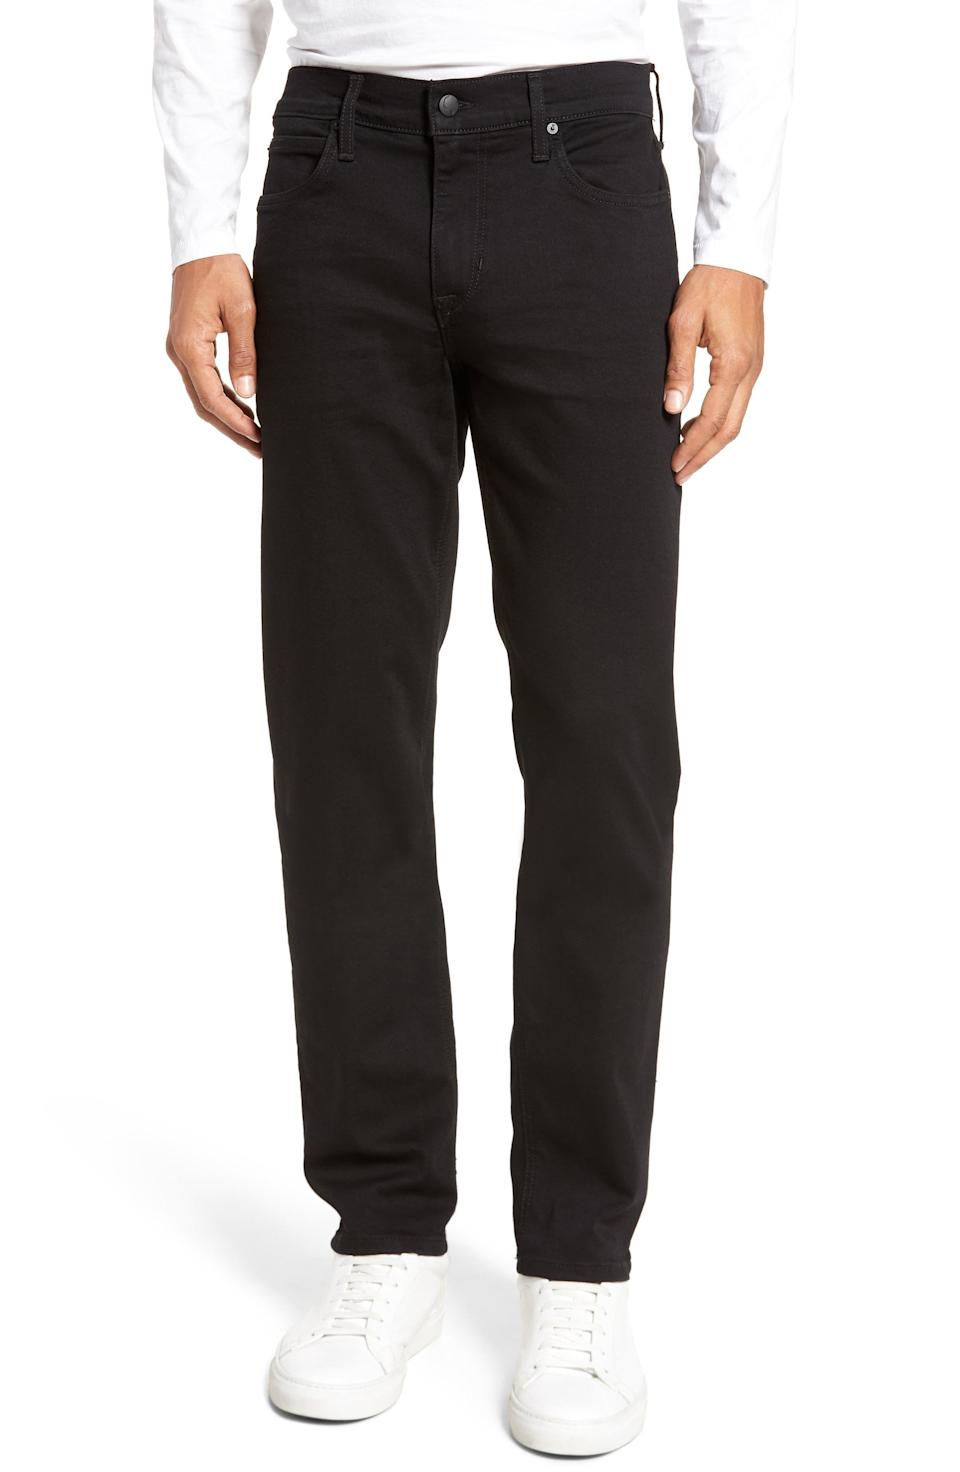 """<p><strong>Joe's</strong></p><p>nordstrom.com</p><p><strong>$119.26</strong></p><p><a href=""""https://go.redirectingat.com?id=74968X1596630&url=https%3A%2F%2Fwww.nordstrom.com%2Fs%2Fjoes-brixton-slim-straight-leg-jeans-griffith%2F4794234&sref=https%3A%2F%2Fwww.esquire.com%2Fstyle%2Fg36535194%2Fnordstrom-mens-sale-half-yearly-spring-2021%2F"""" rel=""""nofollow noopener"""" target=""""_blank"""" data-ylk=""""slk:Shop Now"""" class=""""link rapid-noclick-resp"""">Shop Now</a></p><p>Slim, but not too skinny, and blessedly <em>un</em>distressed, these jeans are built for the long haul.</p>"""